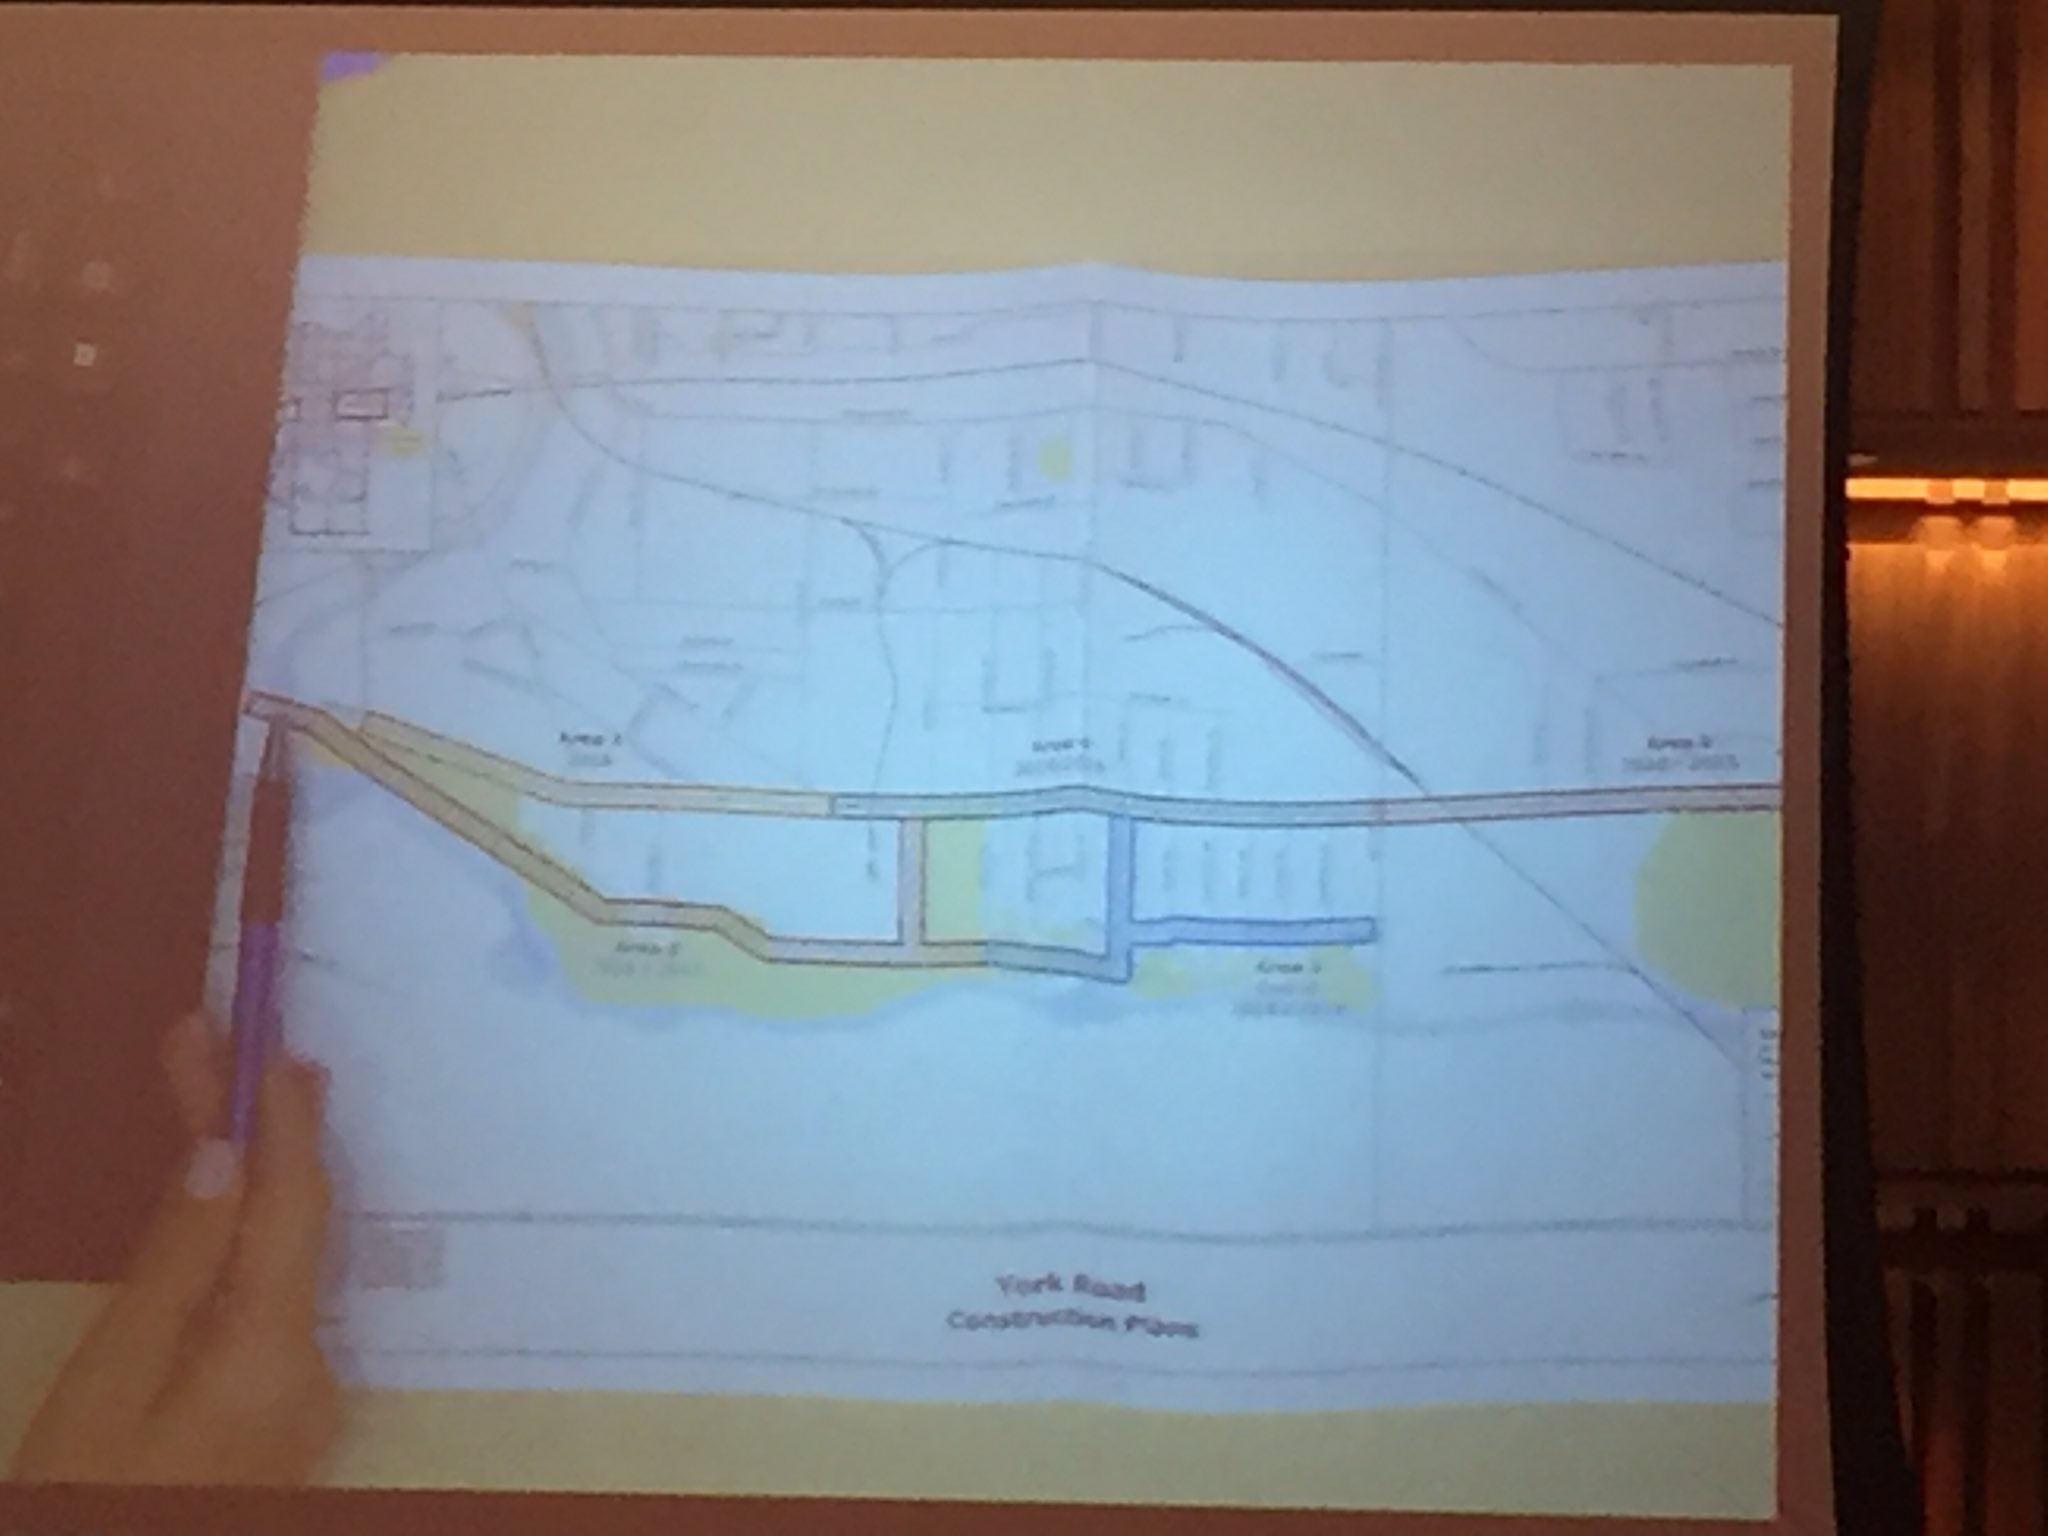 Here's the map of York Ed reconstruction. https://t.co/uF9sDHRiD5